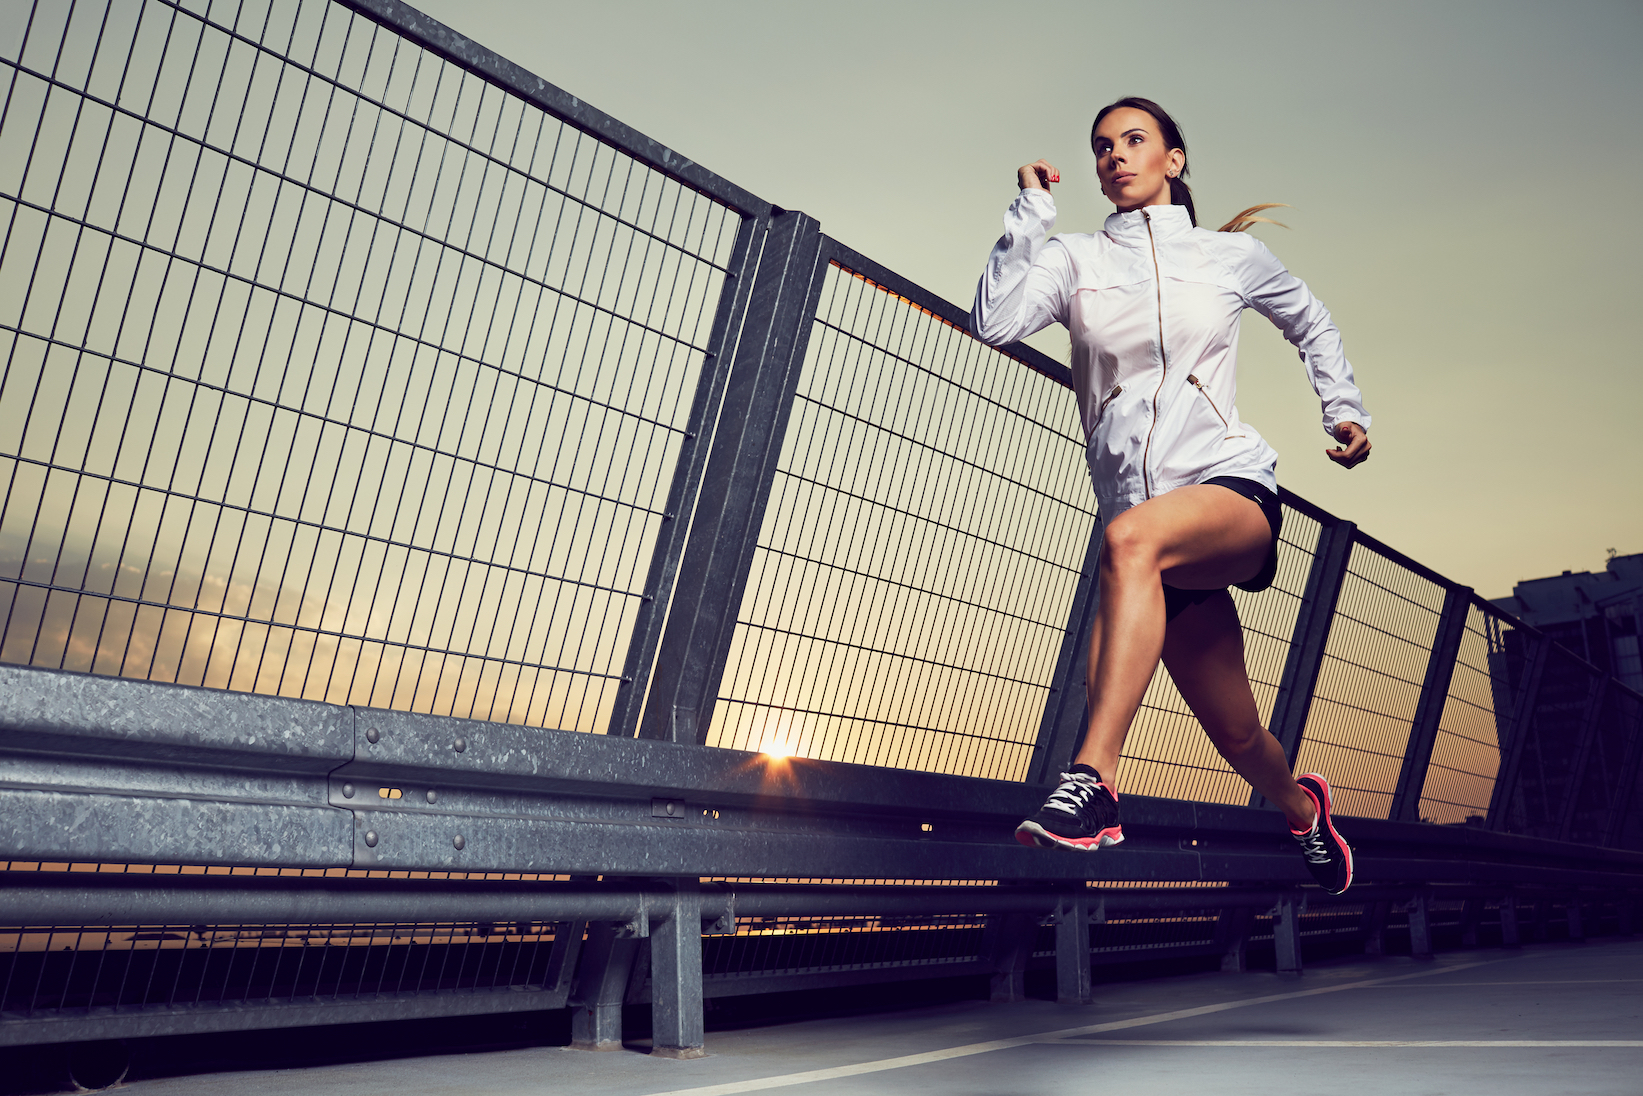 Running faster helps mice learn better, according to a new study that could have potential implications for improving problem-solving in humans.